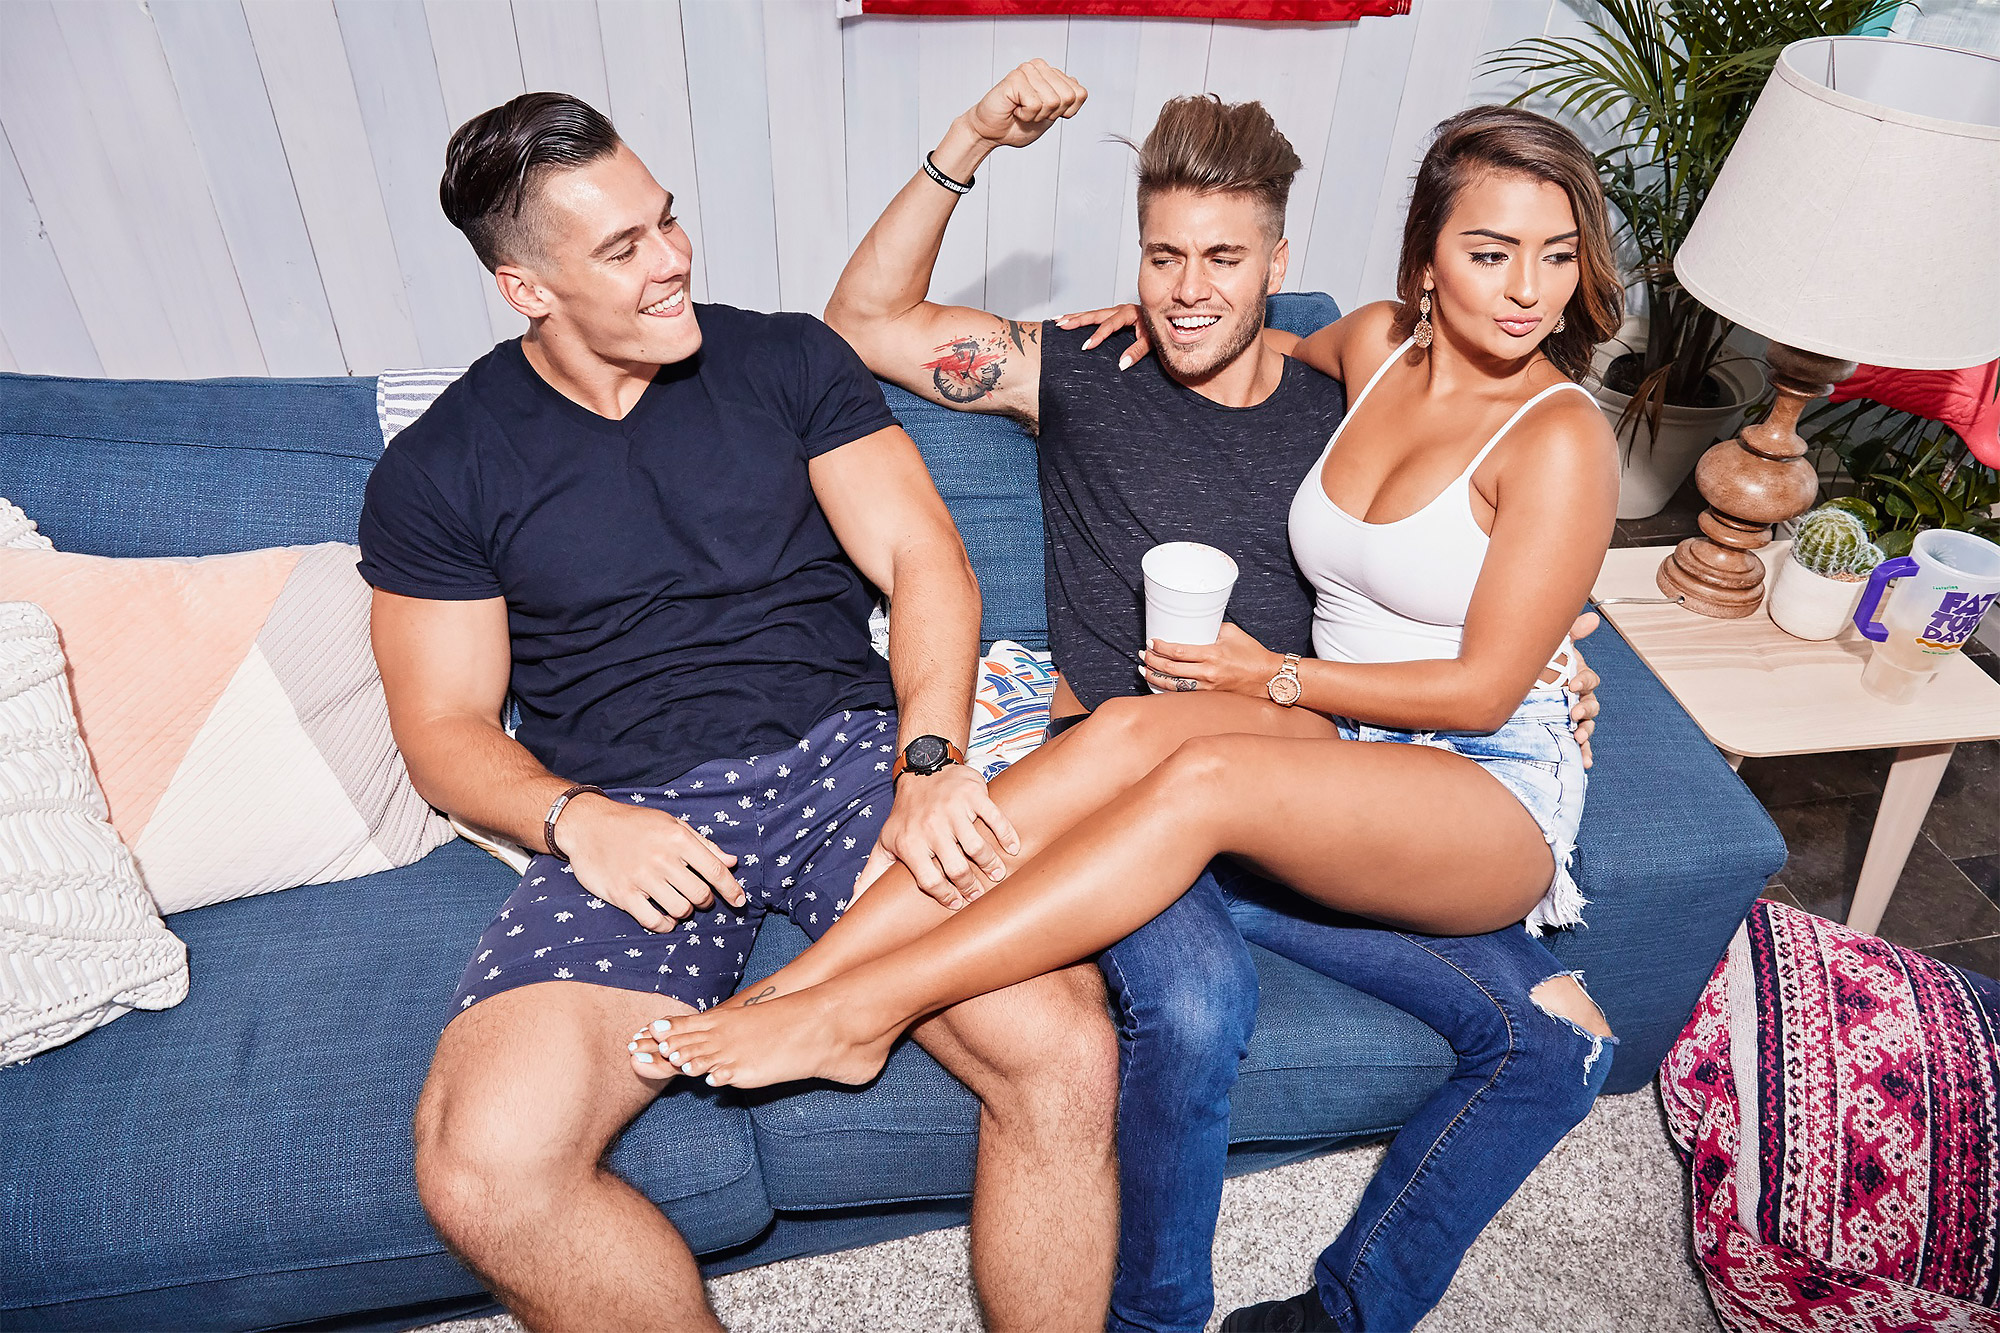 Floribama Shore - Left to Right: Jeremiah, Gus, and NilsaCredit: MTV